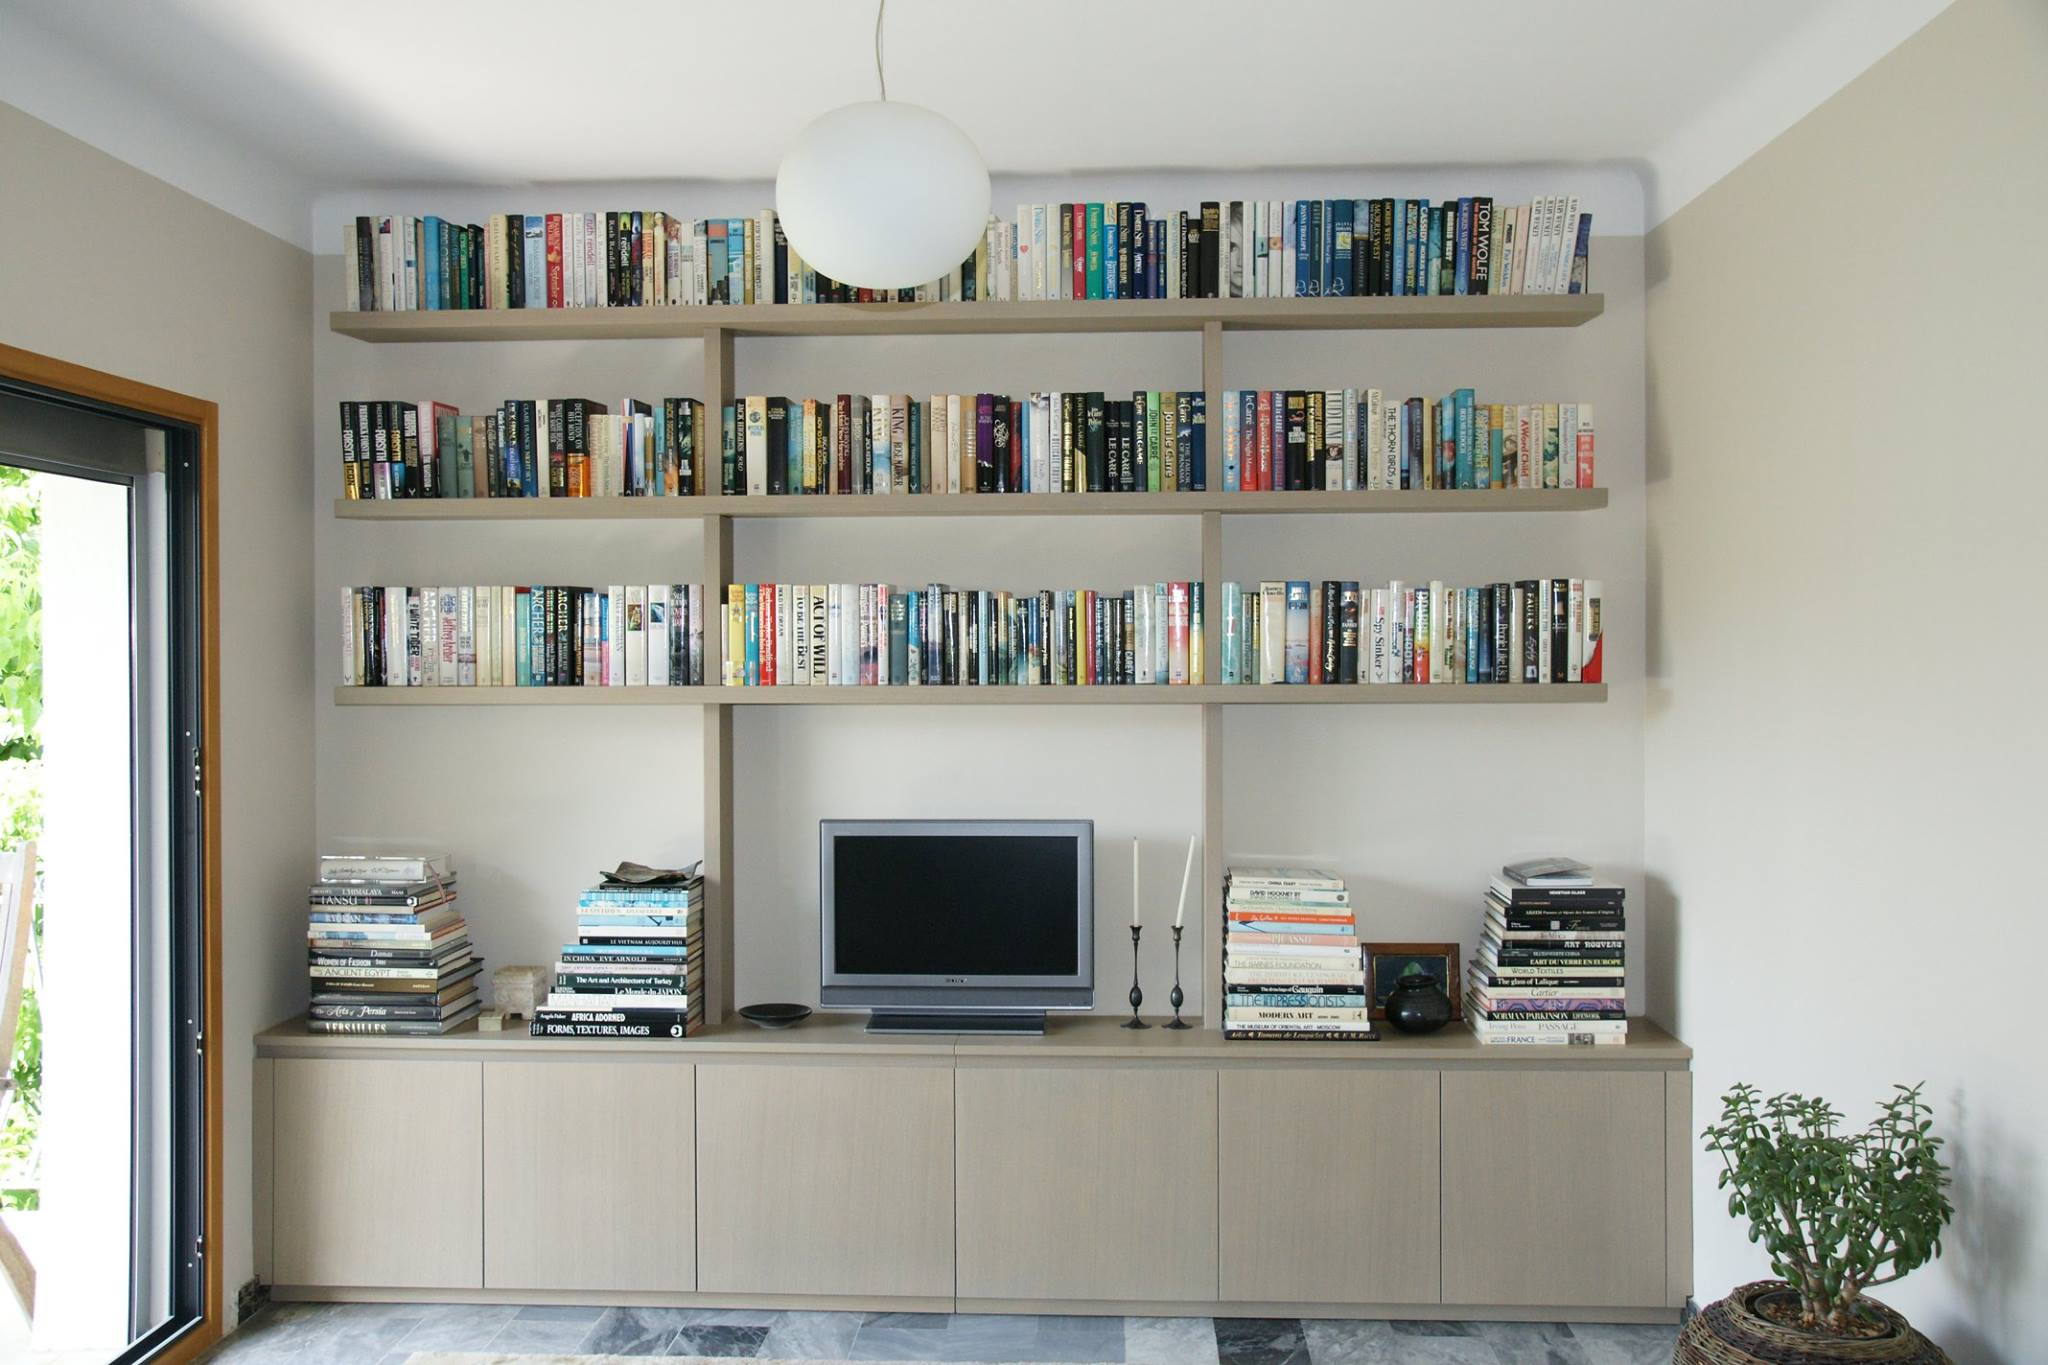 Meuble Tv Biblioth Que Am Agencements # Meuble Bibliotheque Et Tv